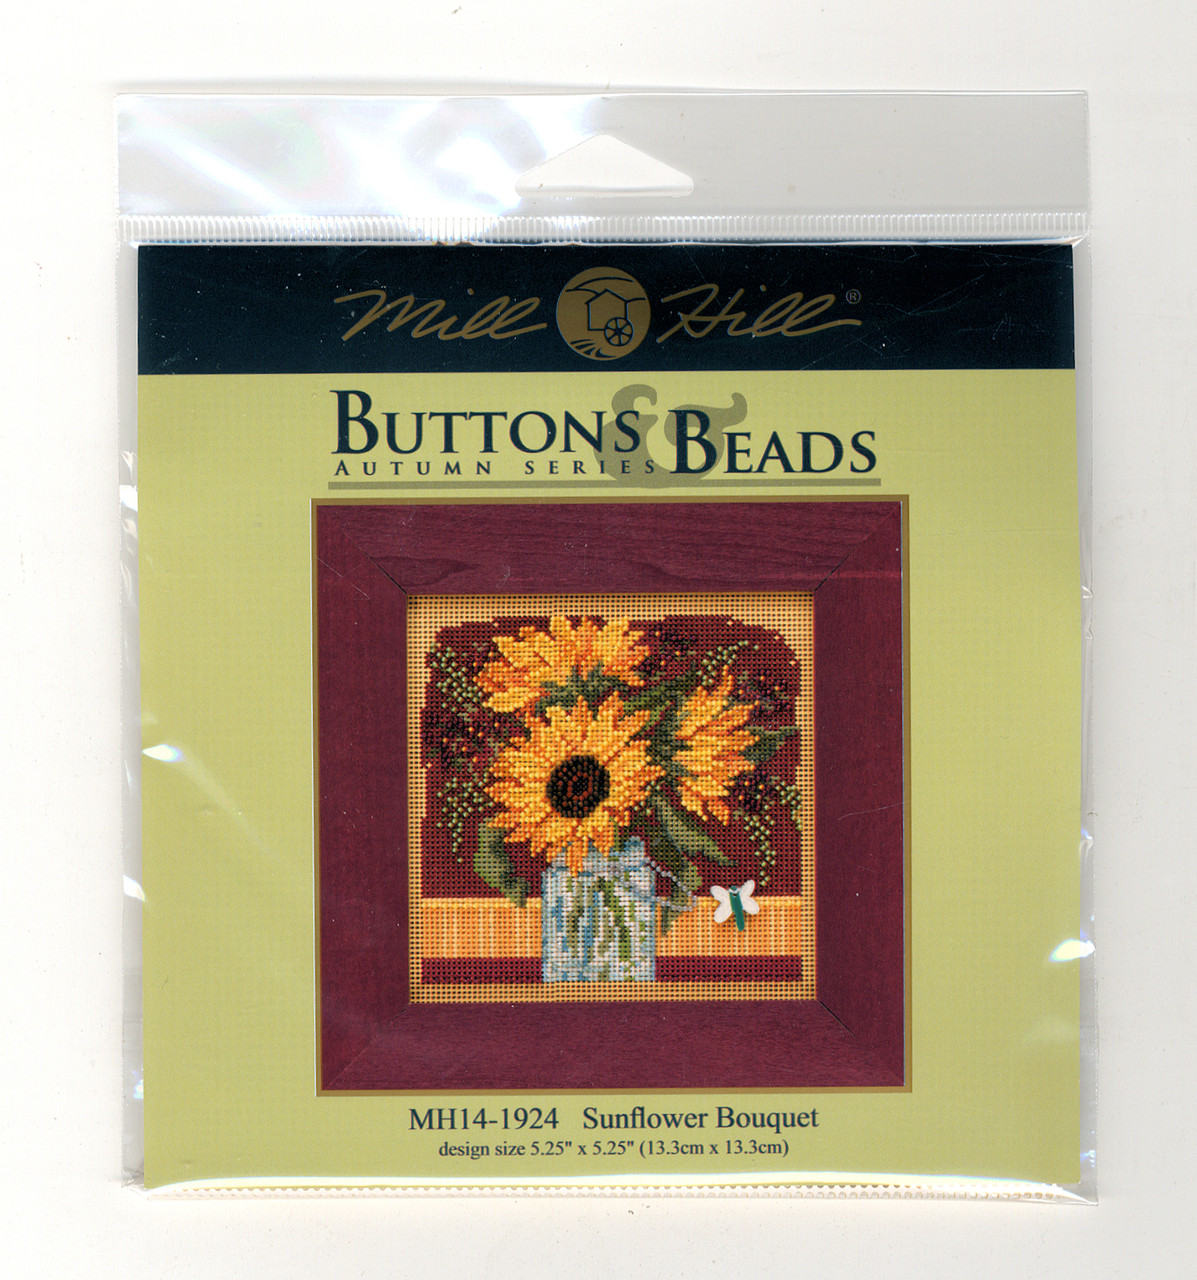 2019 Mill Hill Buttons & Beads Autumn Series - Sunflower Bouquet